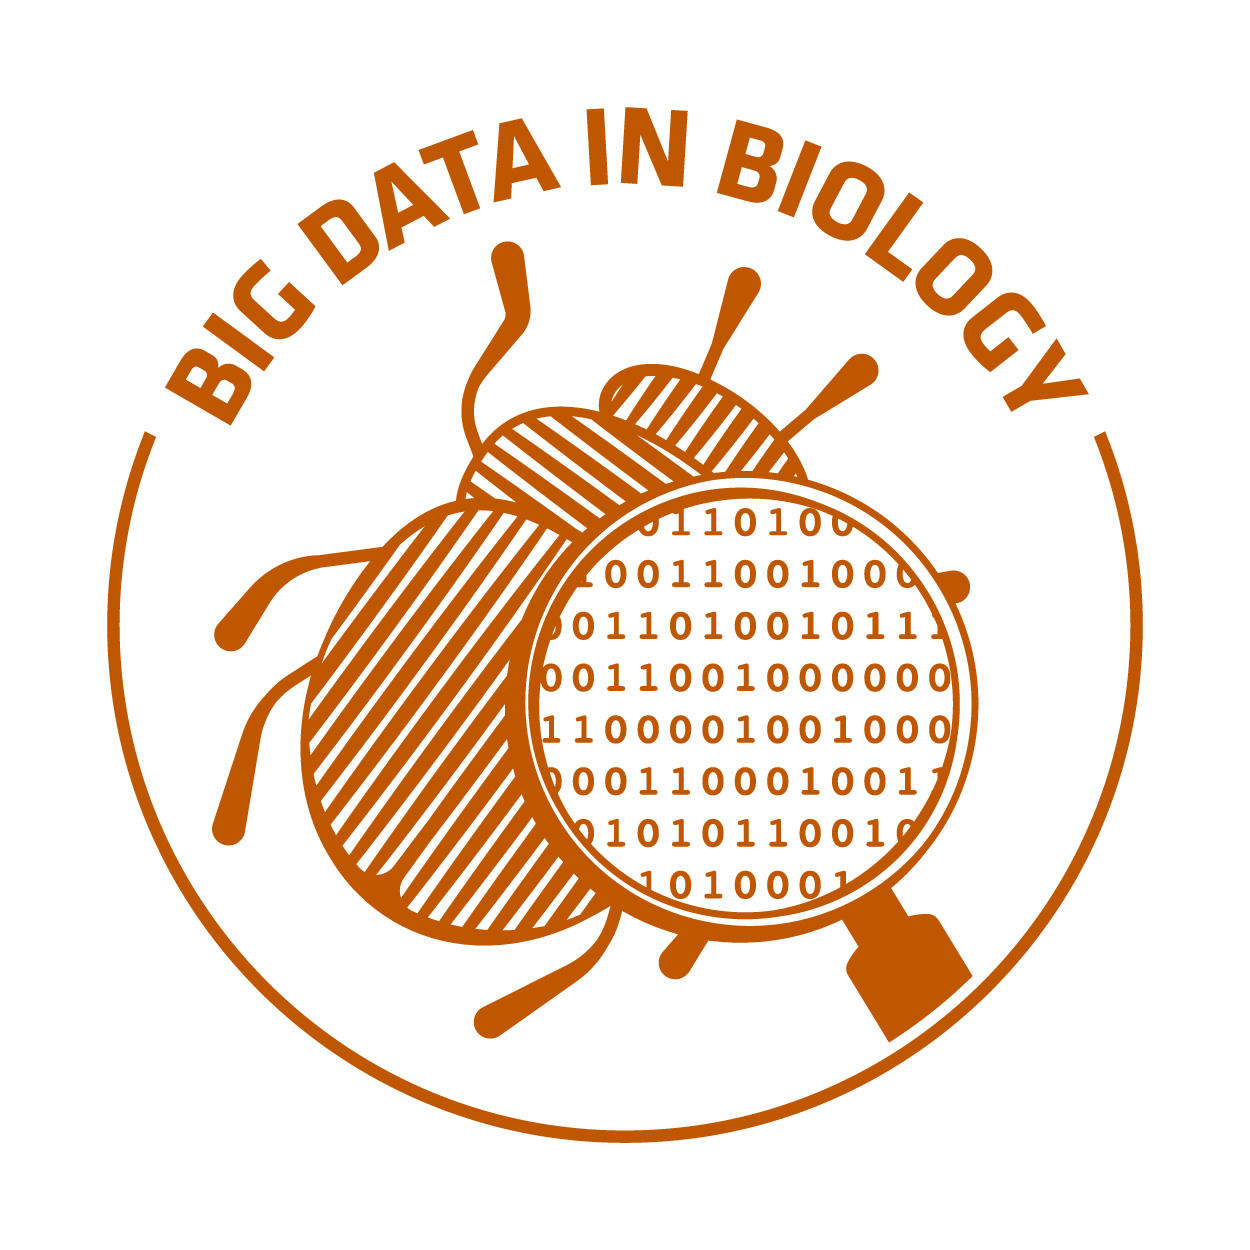 big data in biology RGB orange nickname